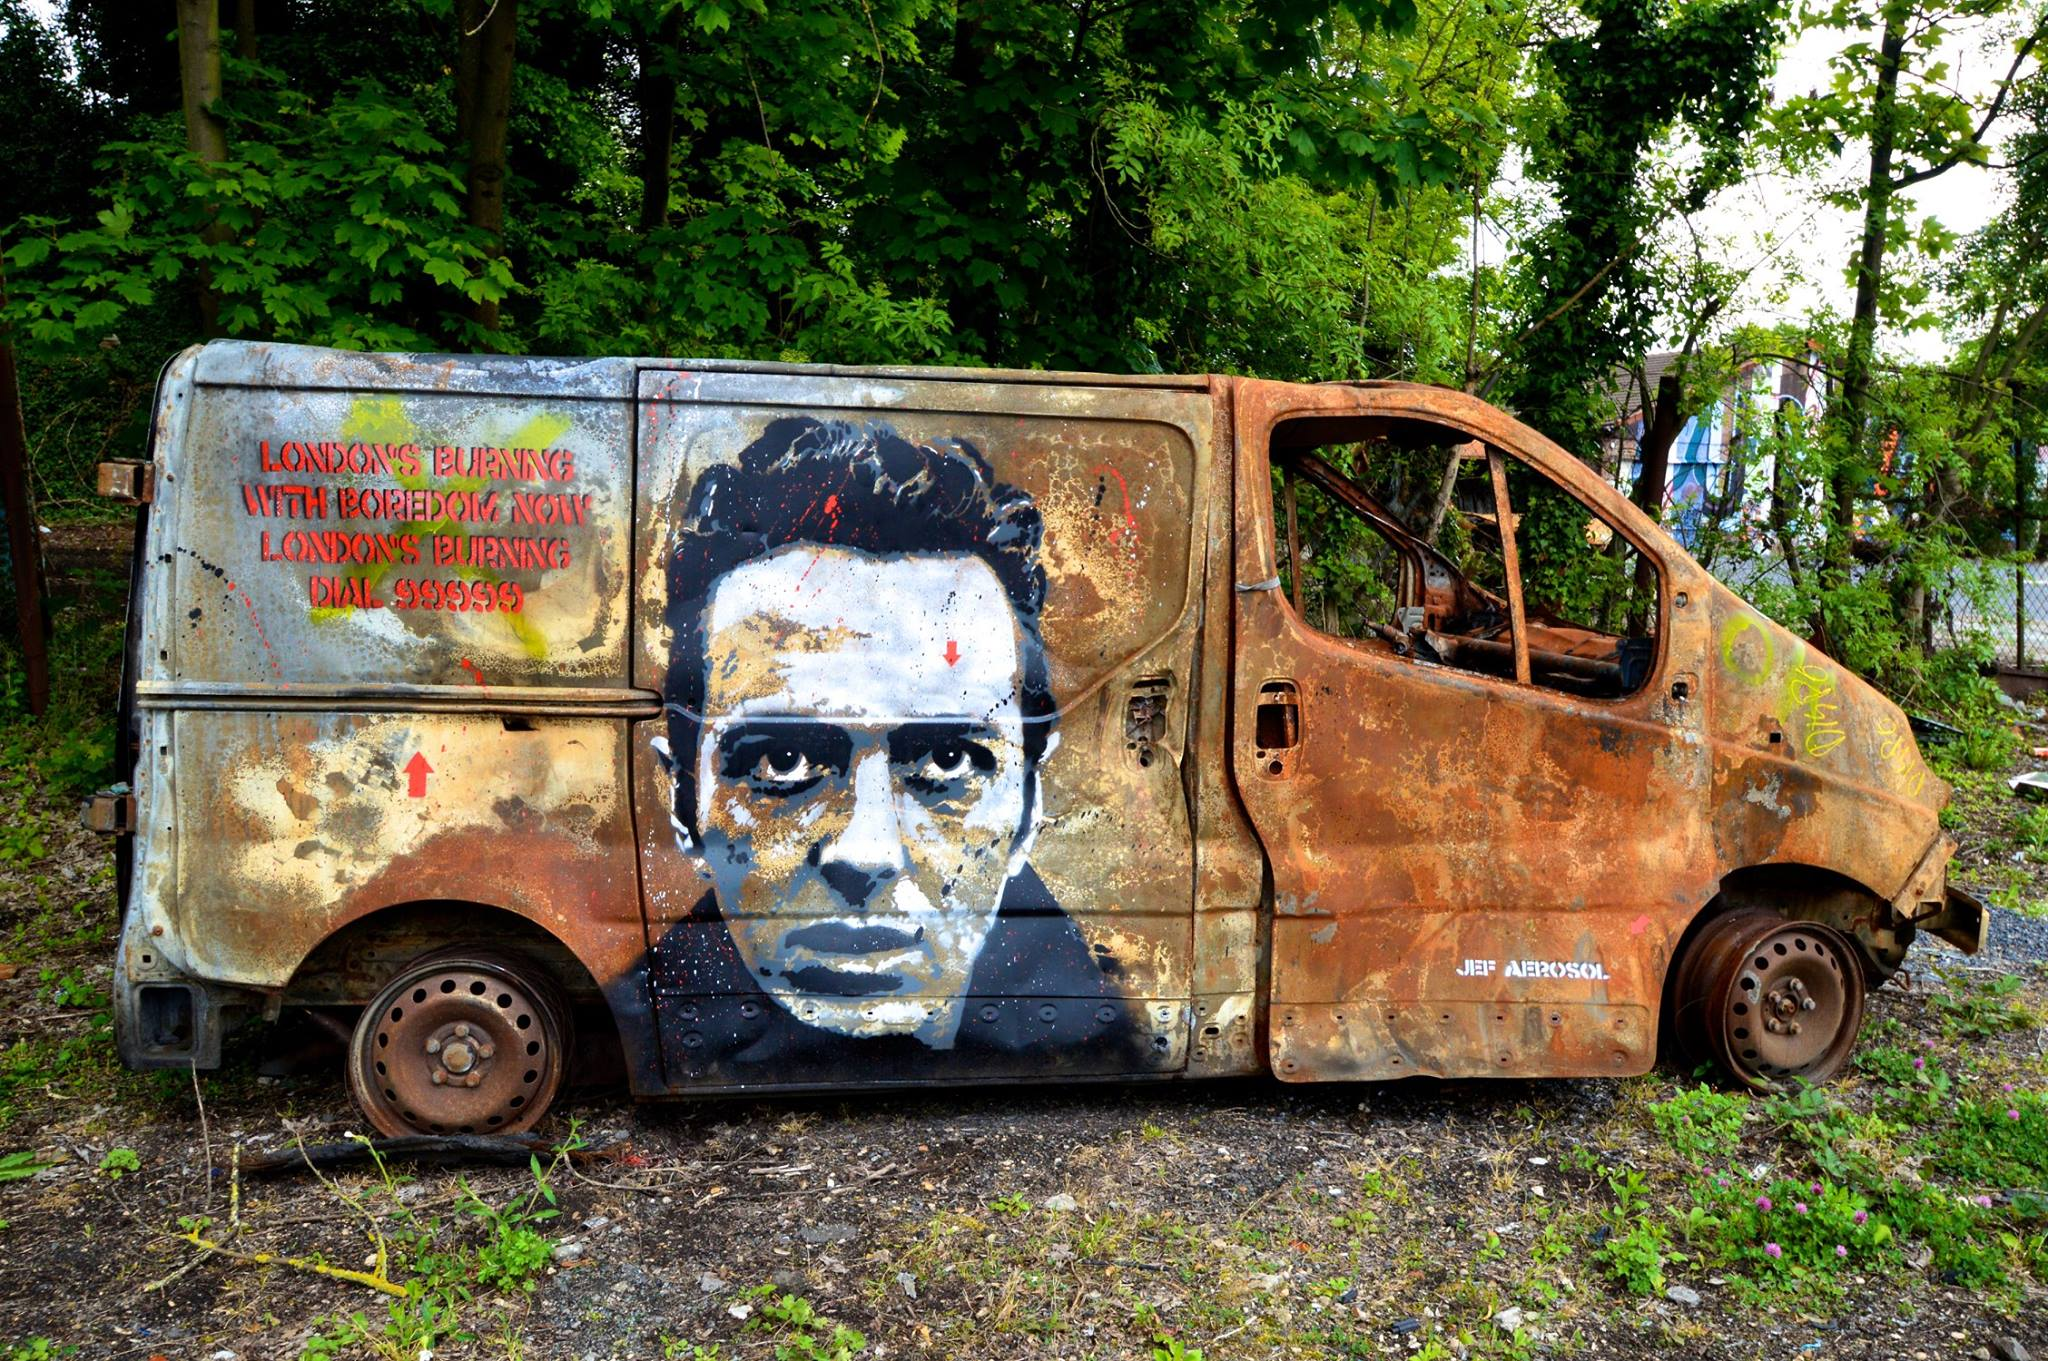 Joe Strummer, London's Burning! Intervention pour In Situ Festival, Fort d'Aubervilliers, 2014